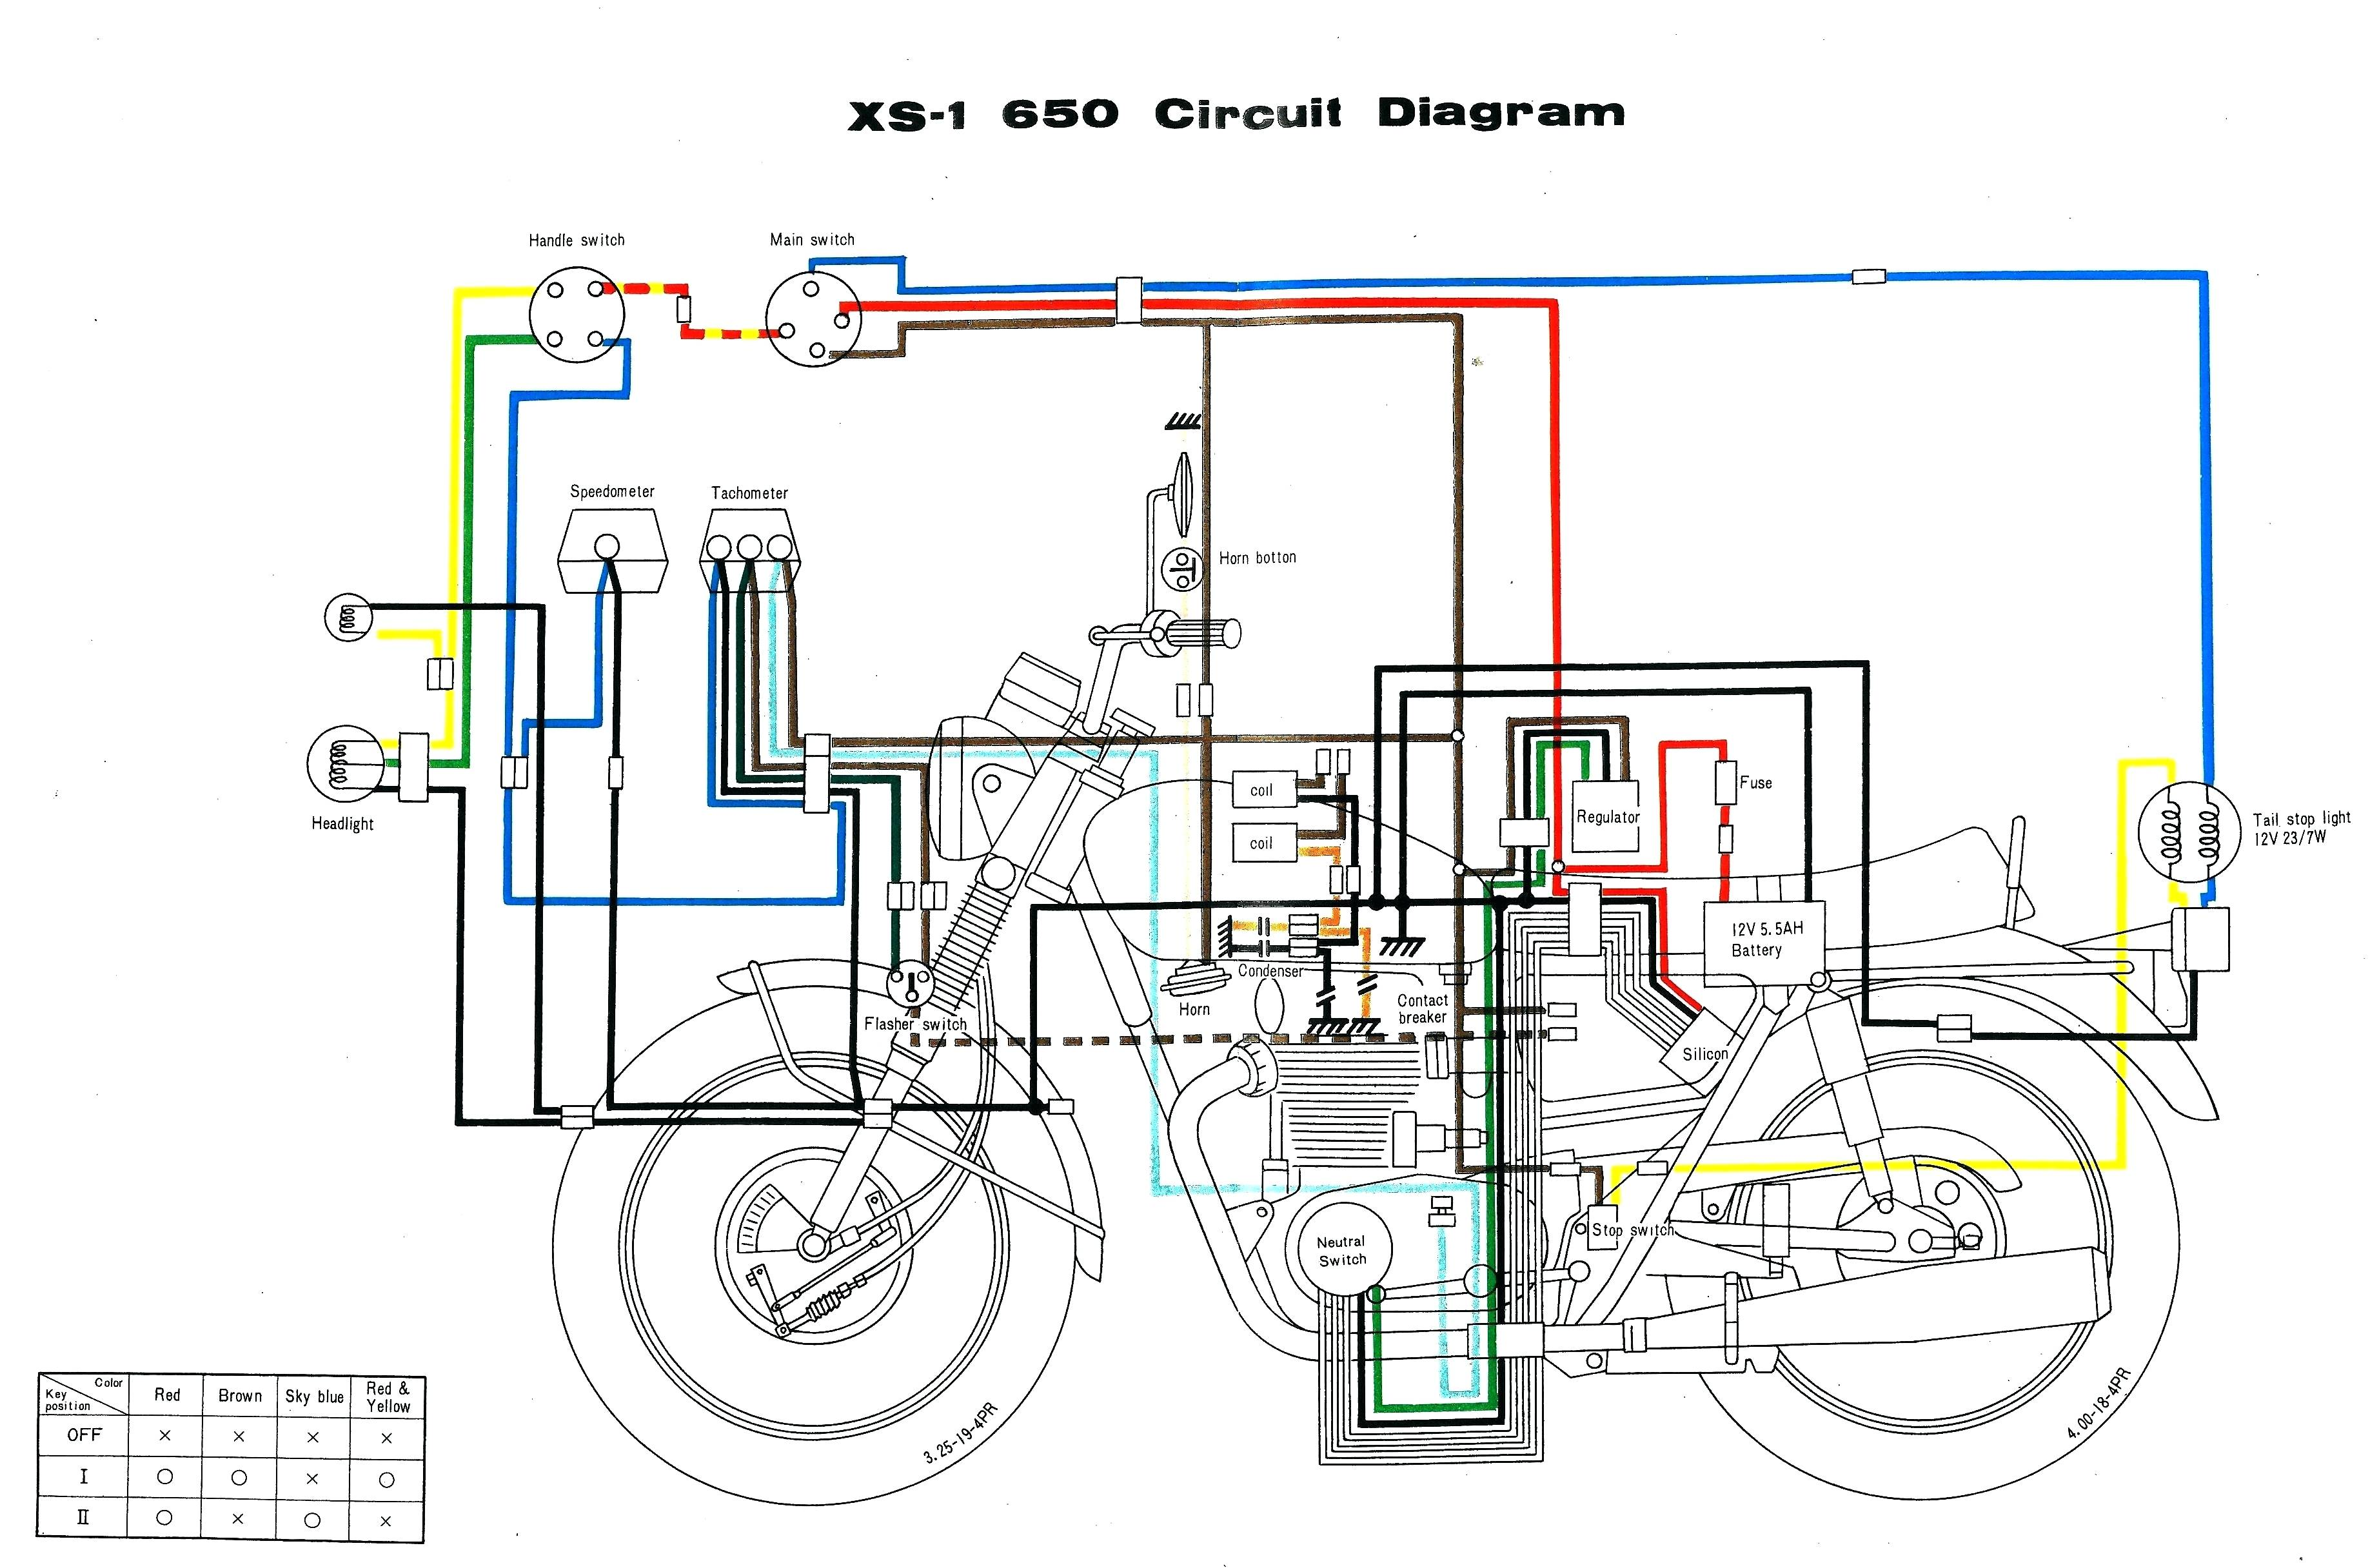 Electric Circuit Drawing At Free For Personal Use Telephone Phone Line Wiring Diagram Likewise 4 Wire 3675x2432 Home Electrical Basics Creator Circuits